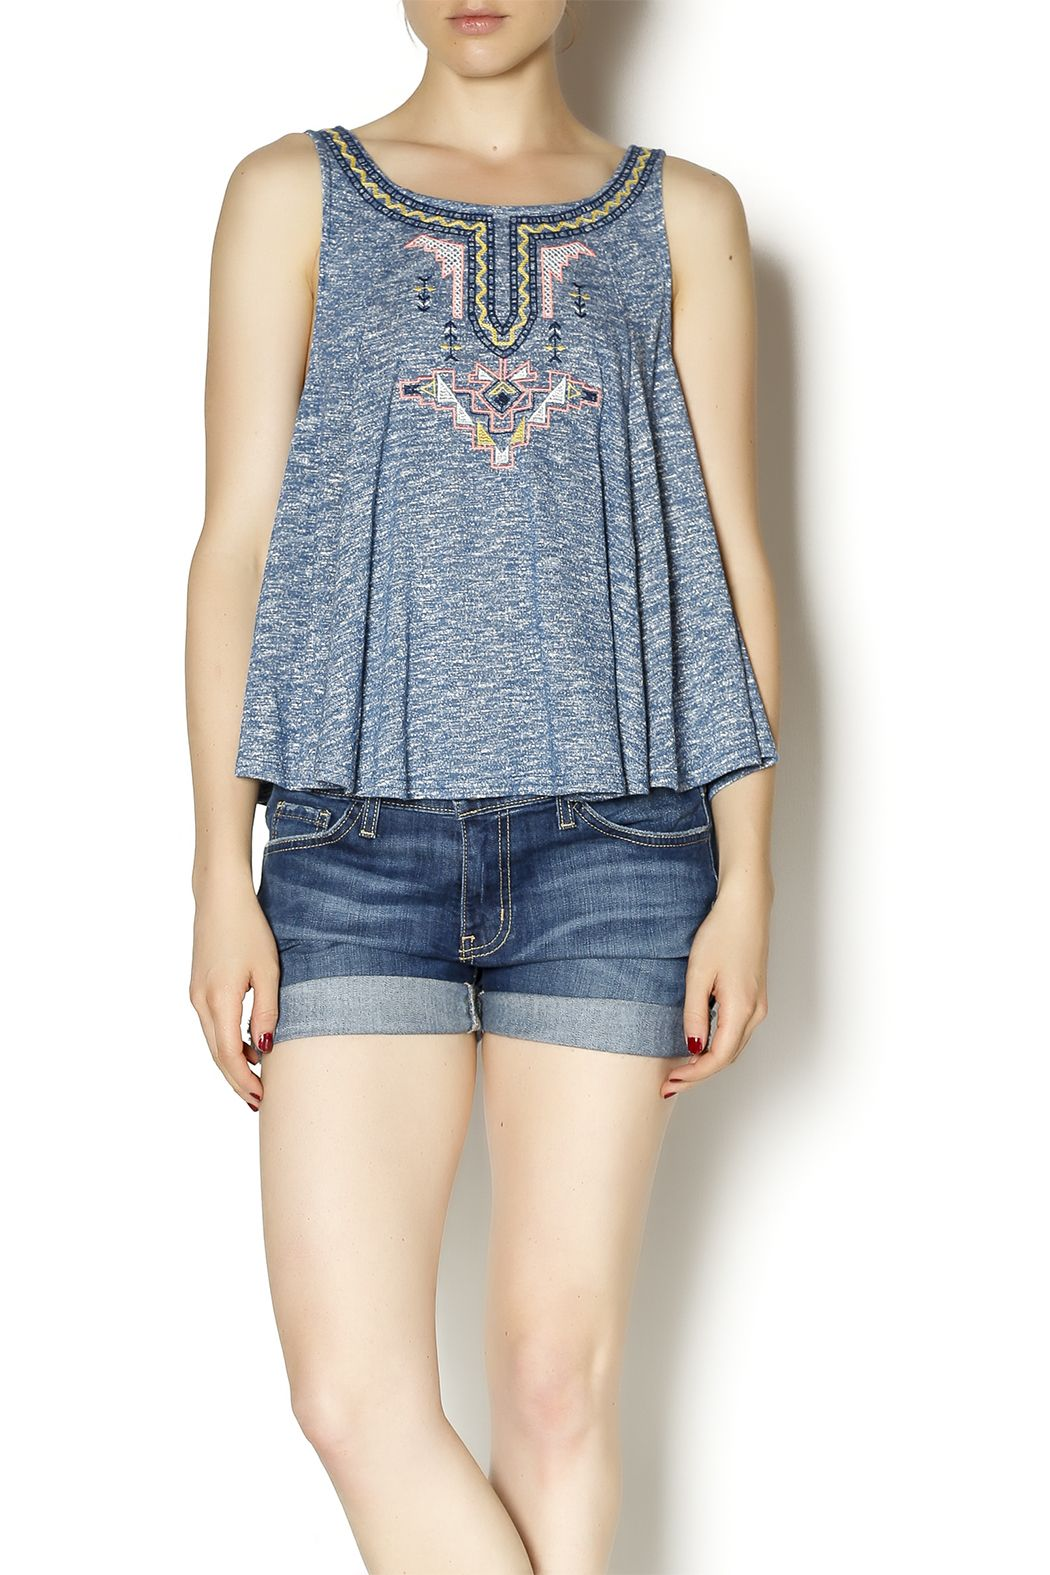 Embroidered blue-grey top with a cut out and tie at the back. This top is perfect for hot summer days with white shorts and your favorite sandals!